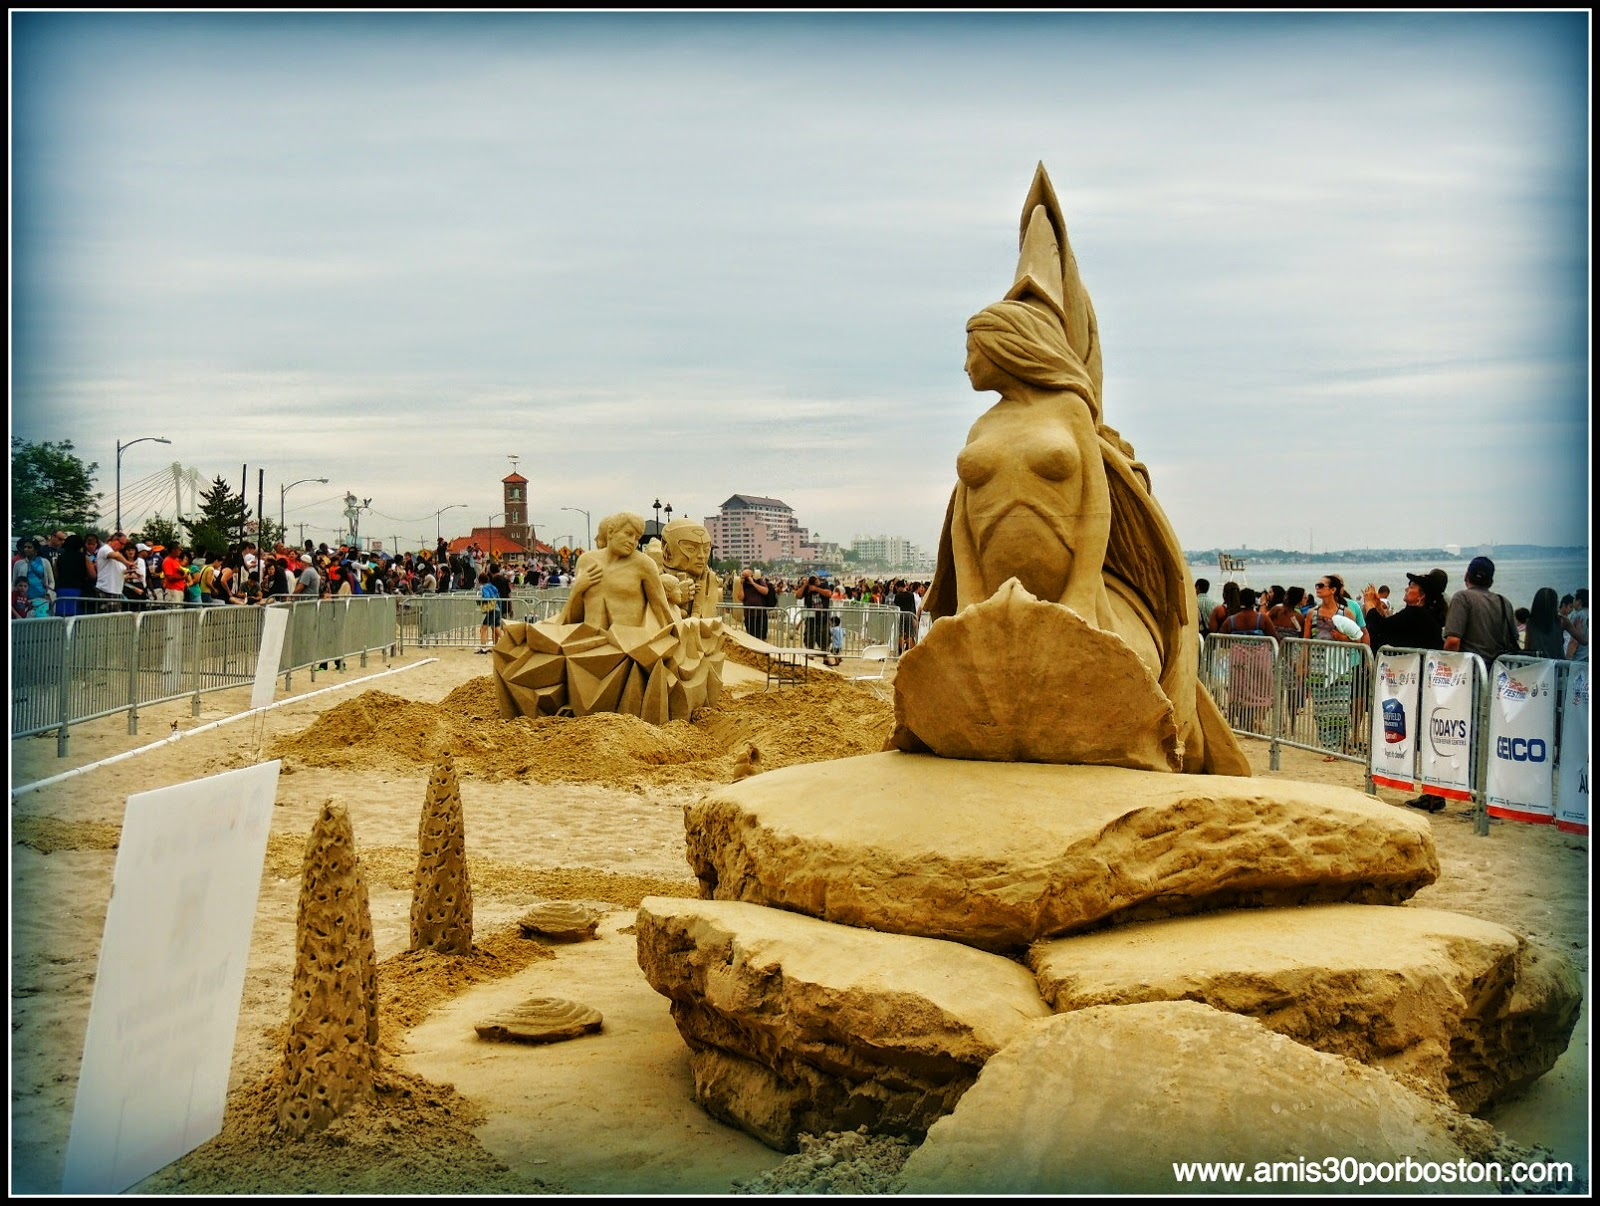 Revere Beach 2014 National Sand Sculpting Festival: Esculturas de Arena